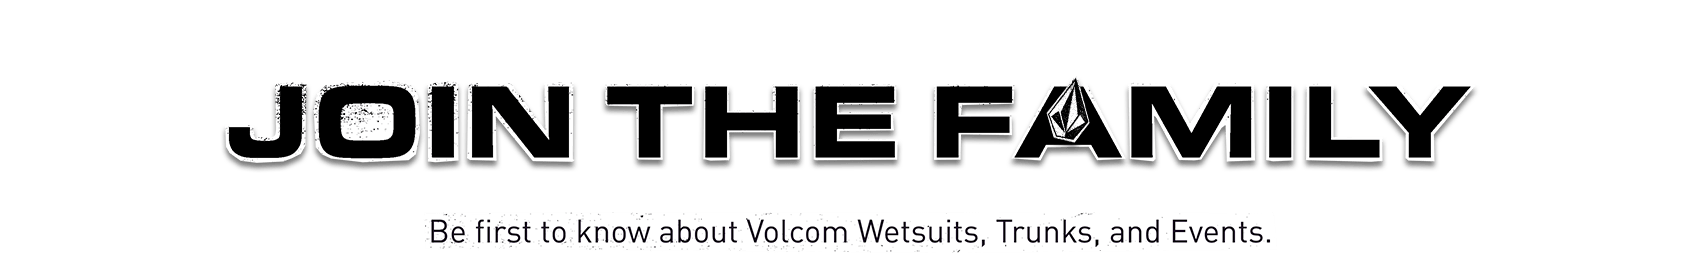 join the family be first to know about Volcom wetsuits trunks and events